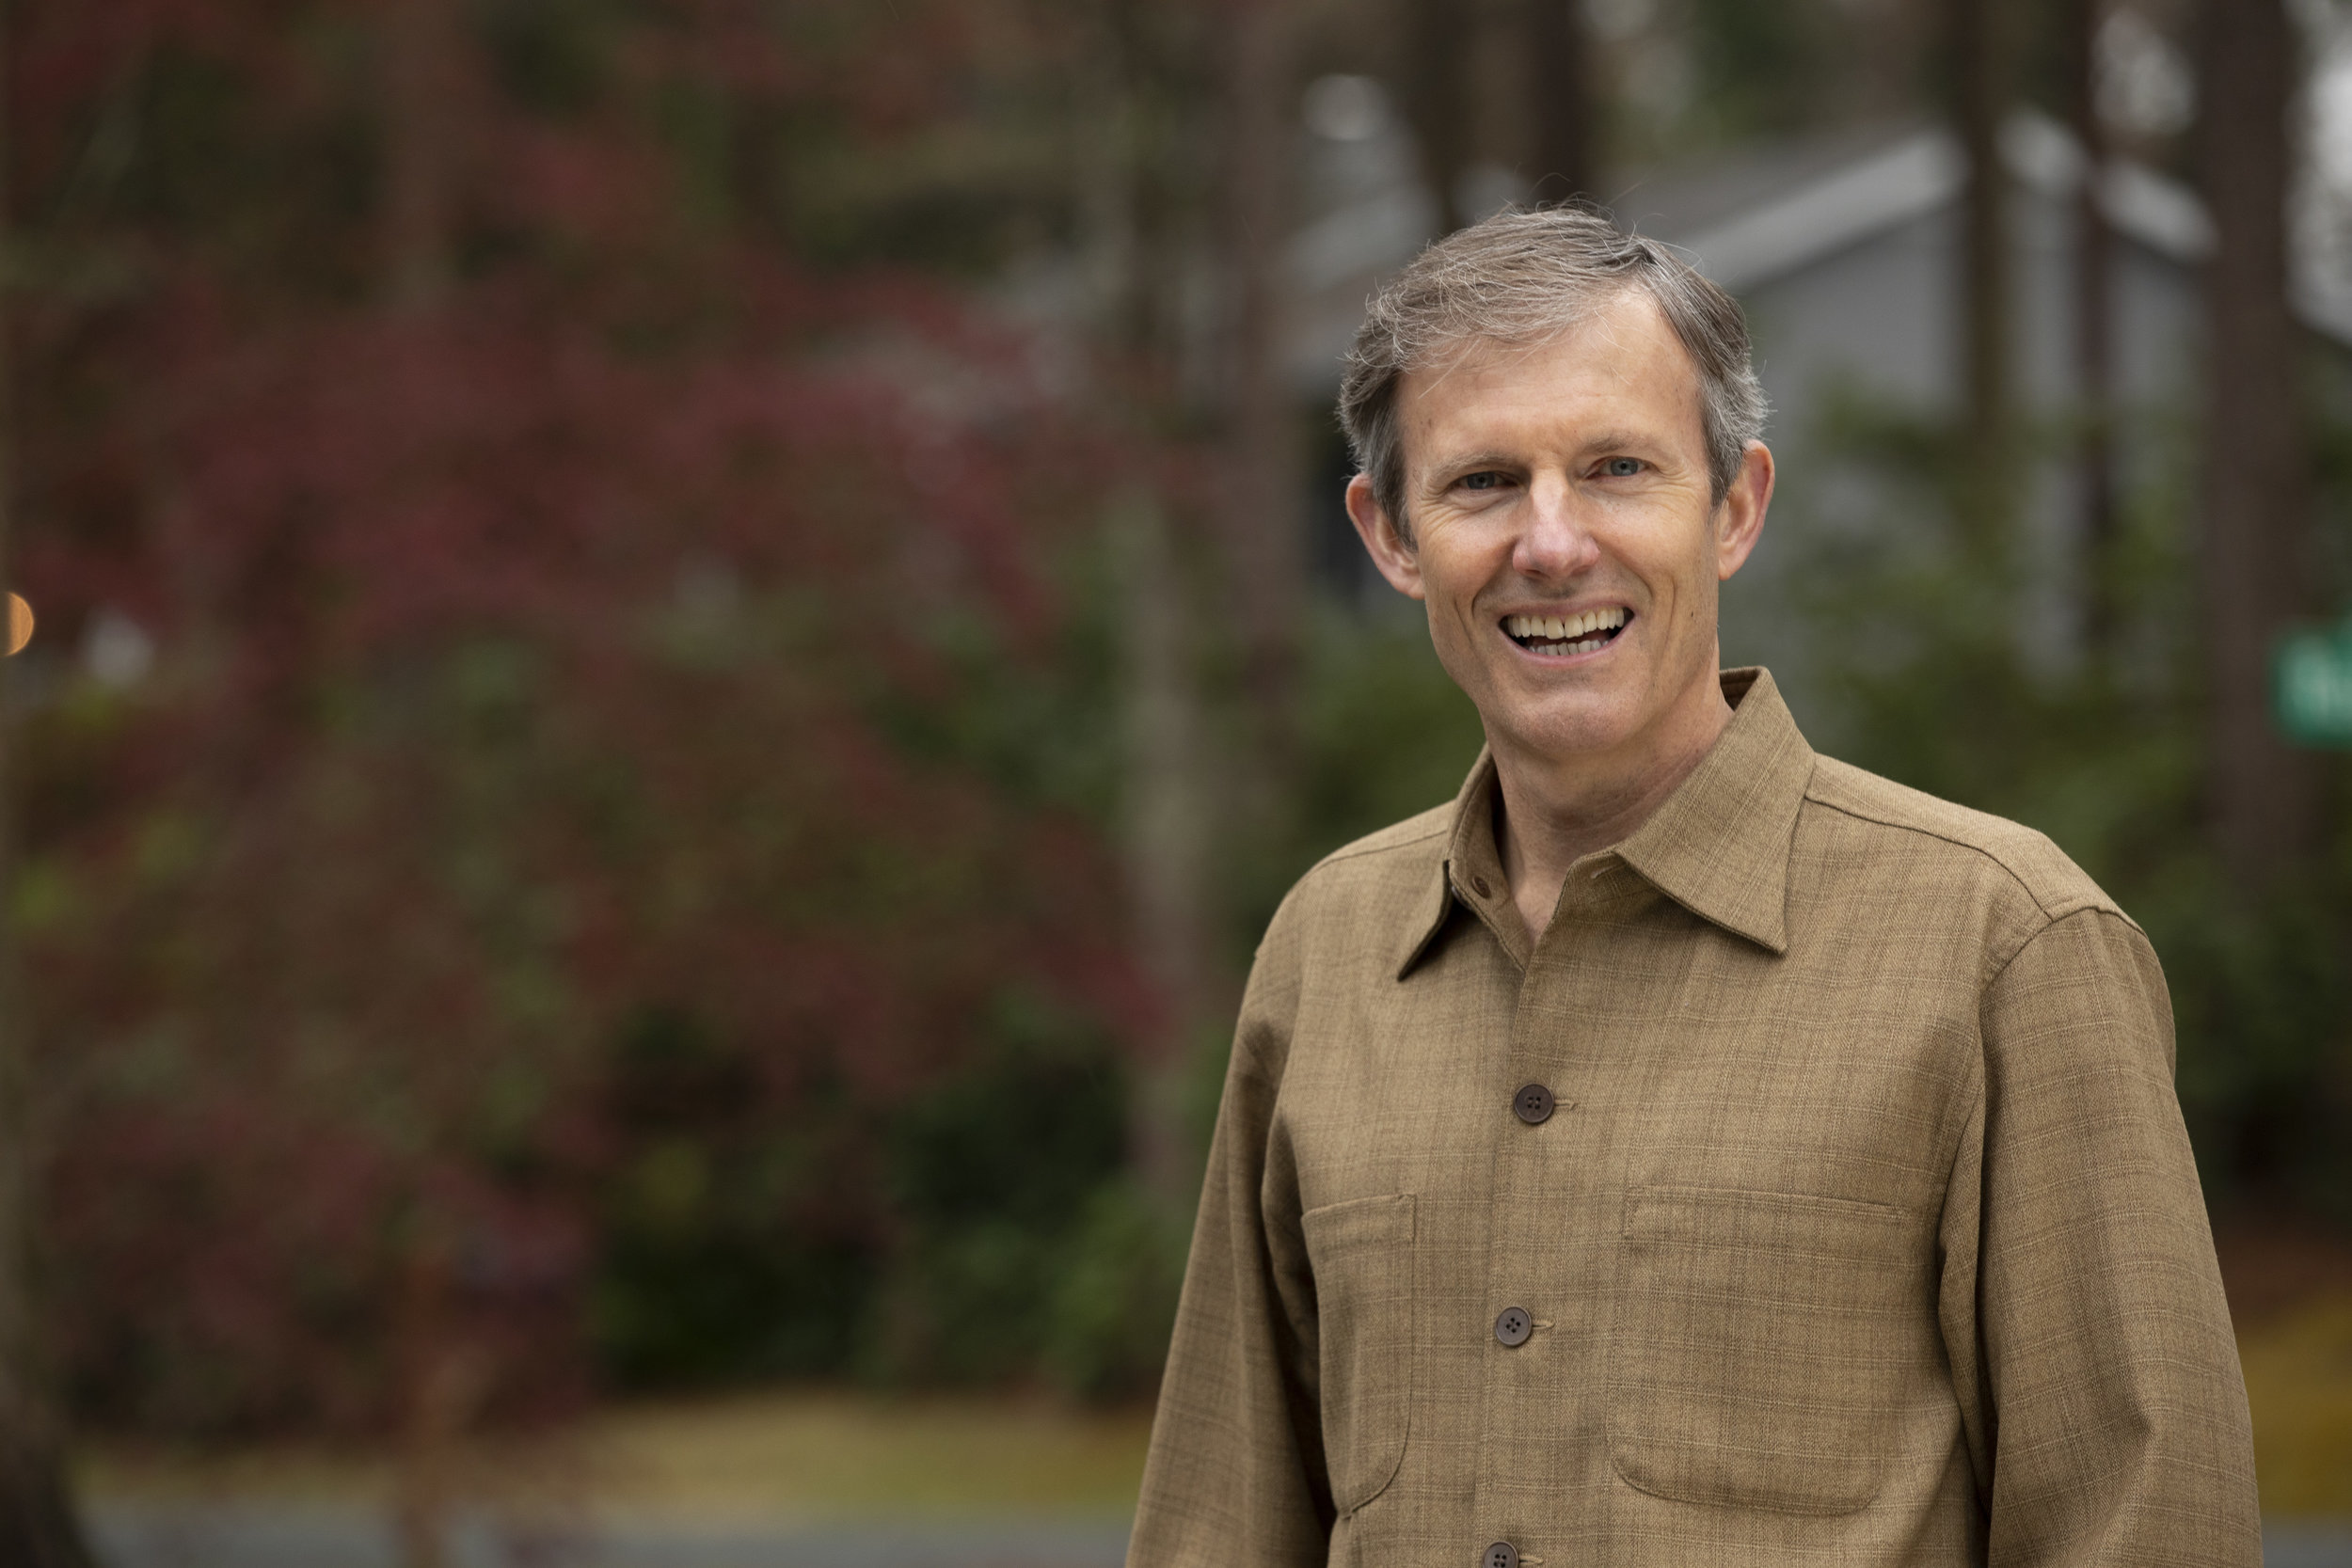 Meet Rodney - As a 20-year resident of Henrico, Rodney knows firsthand what's important to all Virginians. Find out what his roles as husband, father, businessman and good-government advocate have taught him.